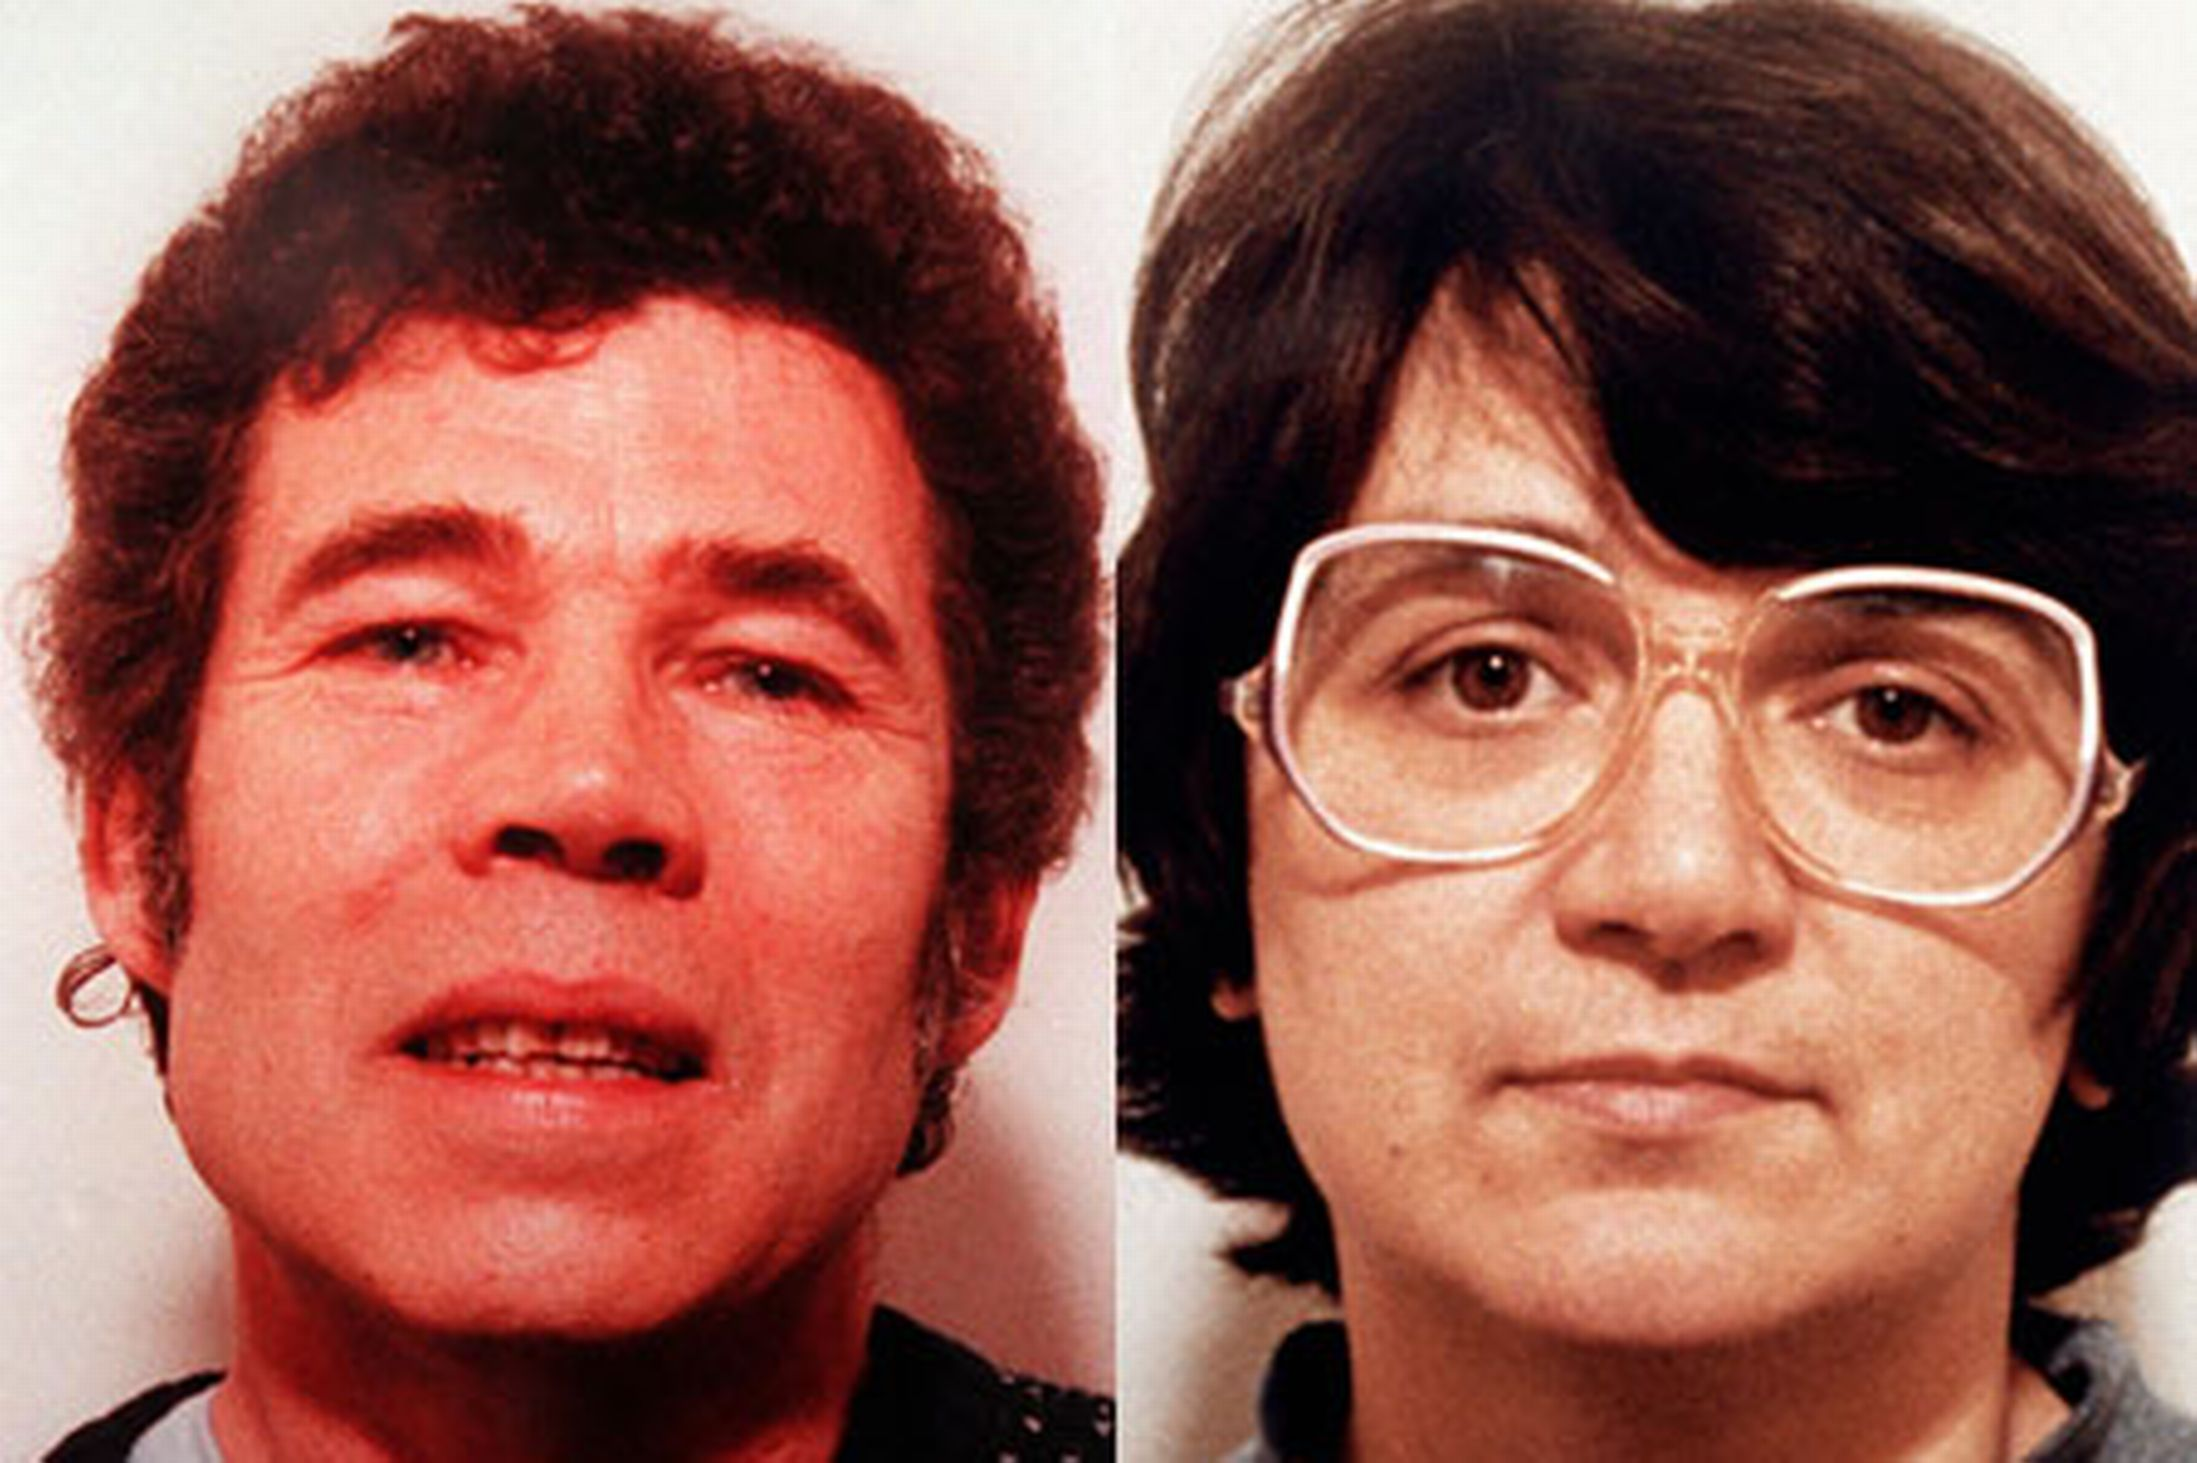 FRED AND ROSE WEST – I:  Sex, Murder and Dismemberment